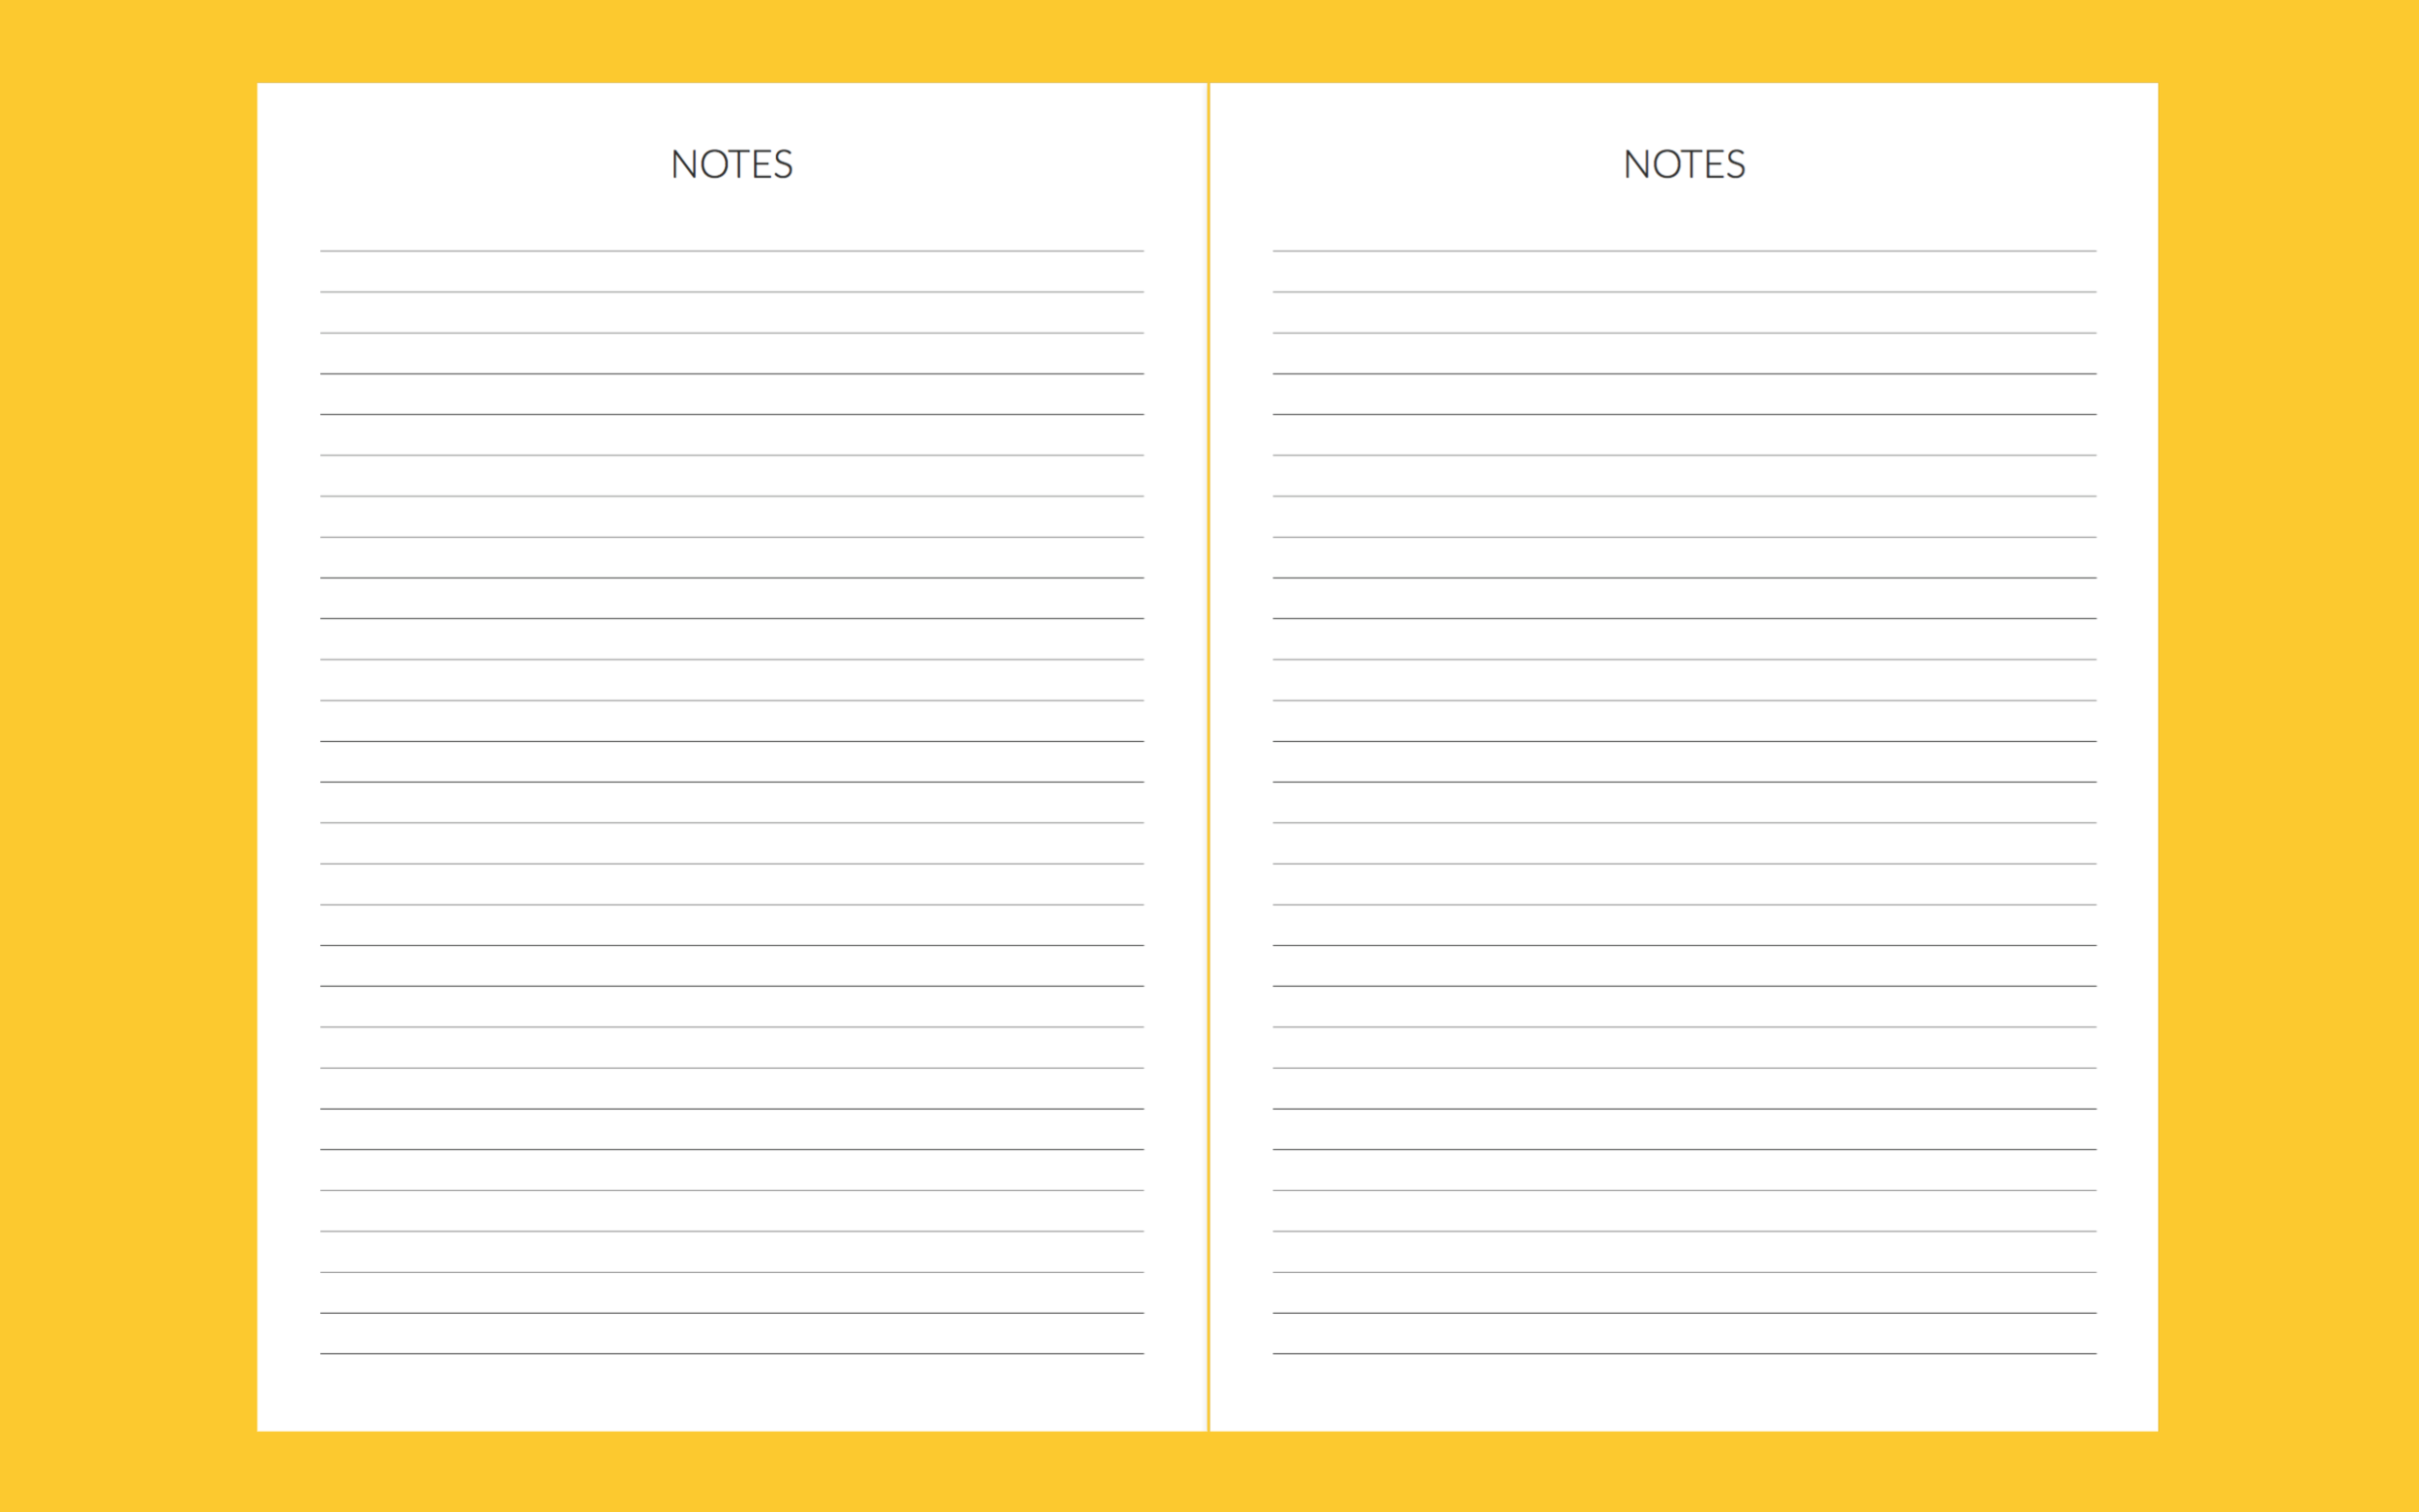 We all have notes to write, right?  And it's also great for jotting down things that are happening the next year that you have no space in the planner for at that moment.